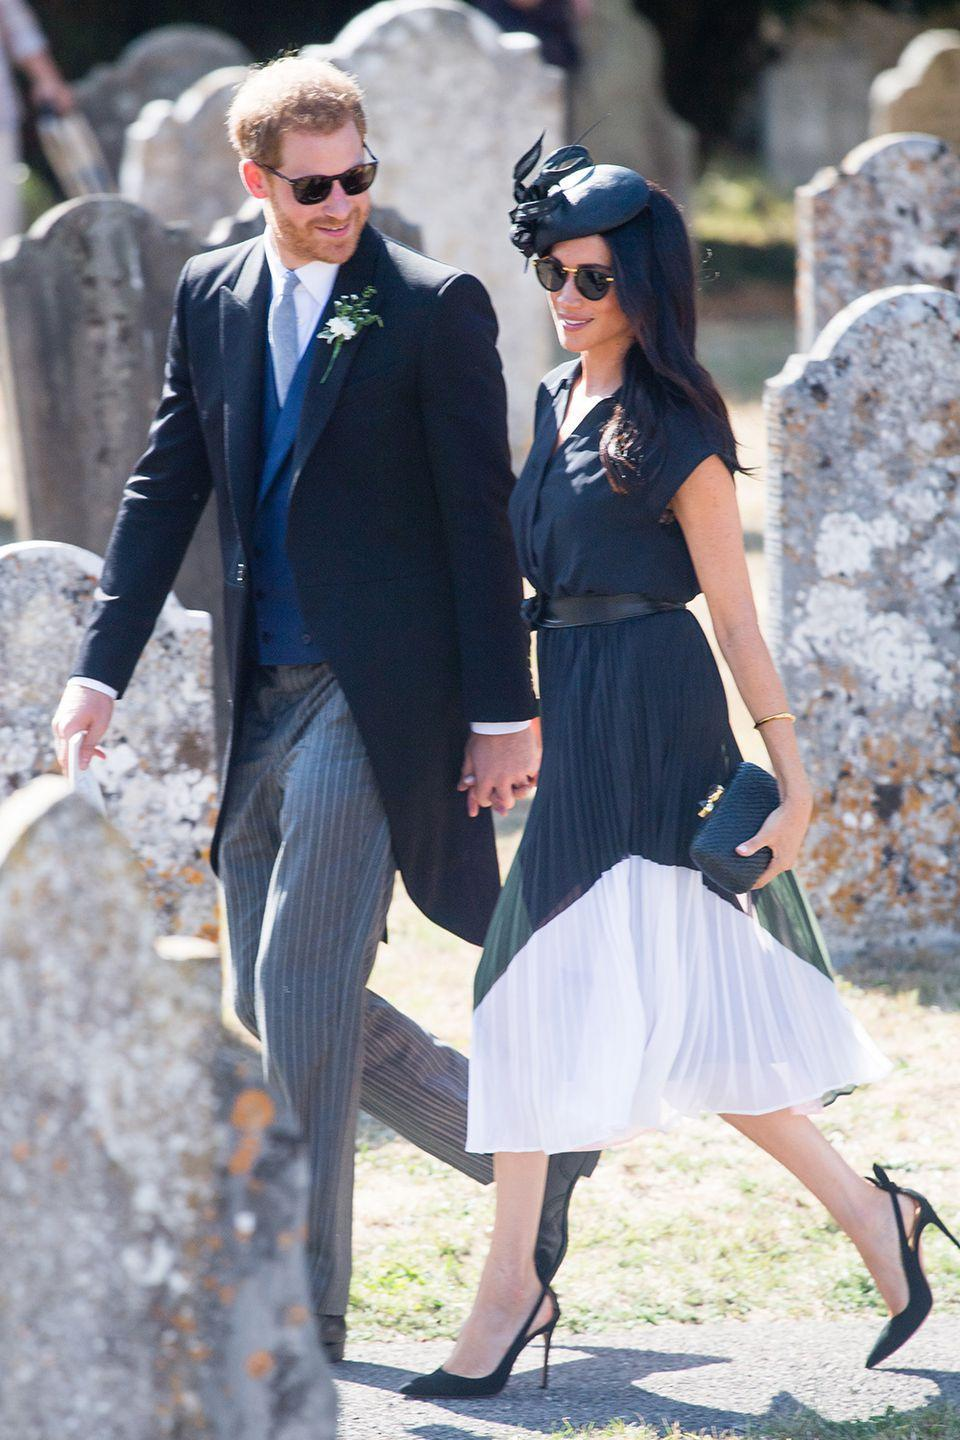 <p>Meghan celebrated her 37th birthday at the wedding of Charlie Van Straubenzee and Daisy Jenks, but Prince Harry made sure she was still the centre of his attention with this loving gaze. </p>